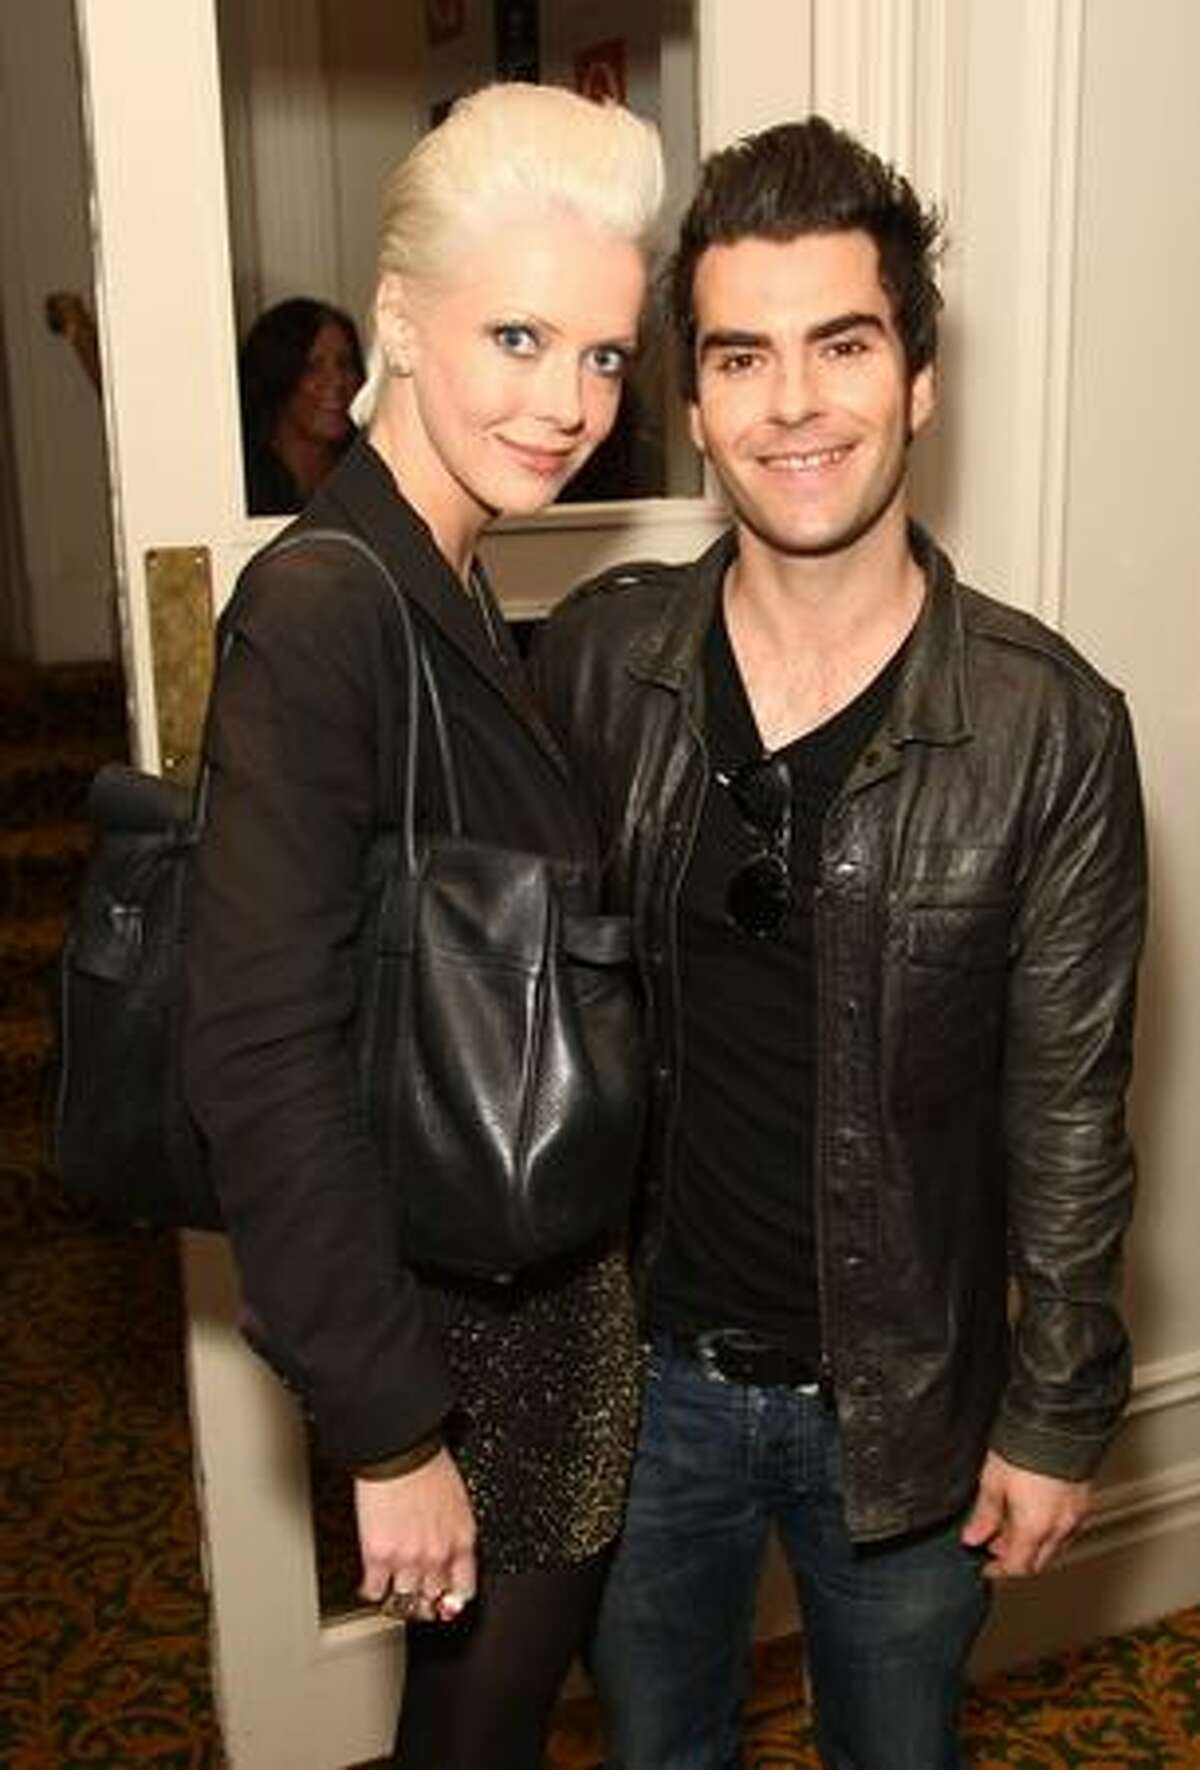 Kelly Jones (R) and guest attend the 2009 Q Awards held at the Grosvenor House Hotel in London, England.